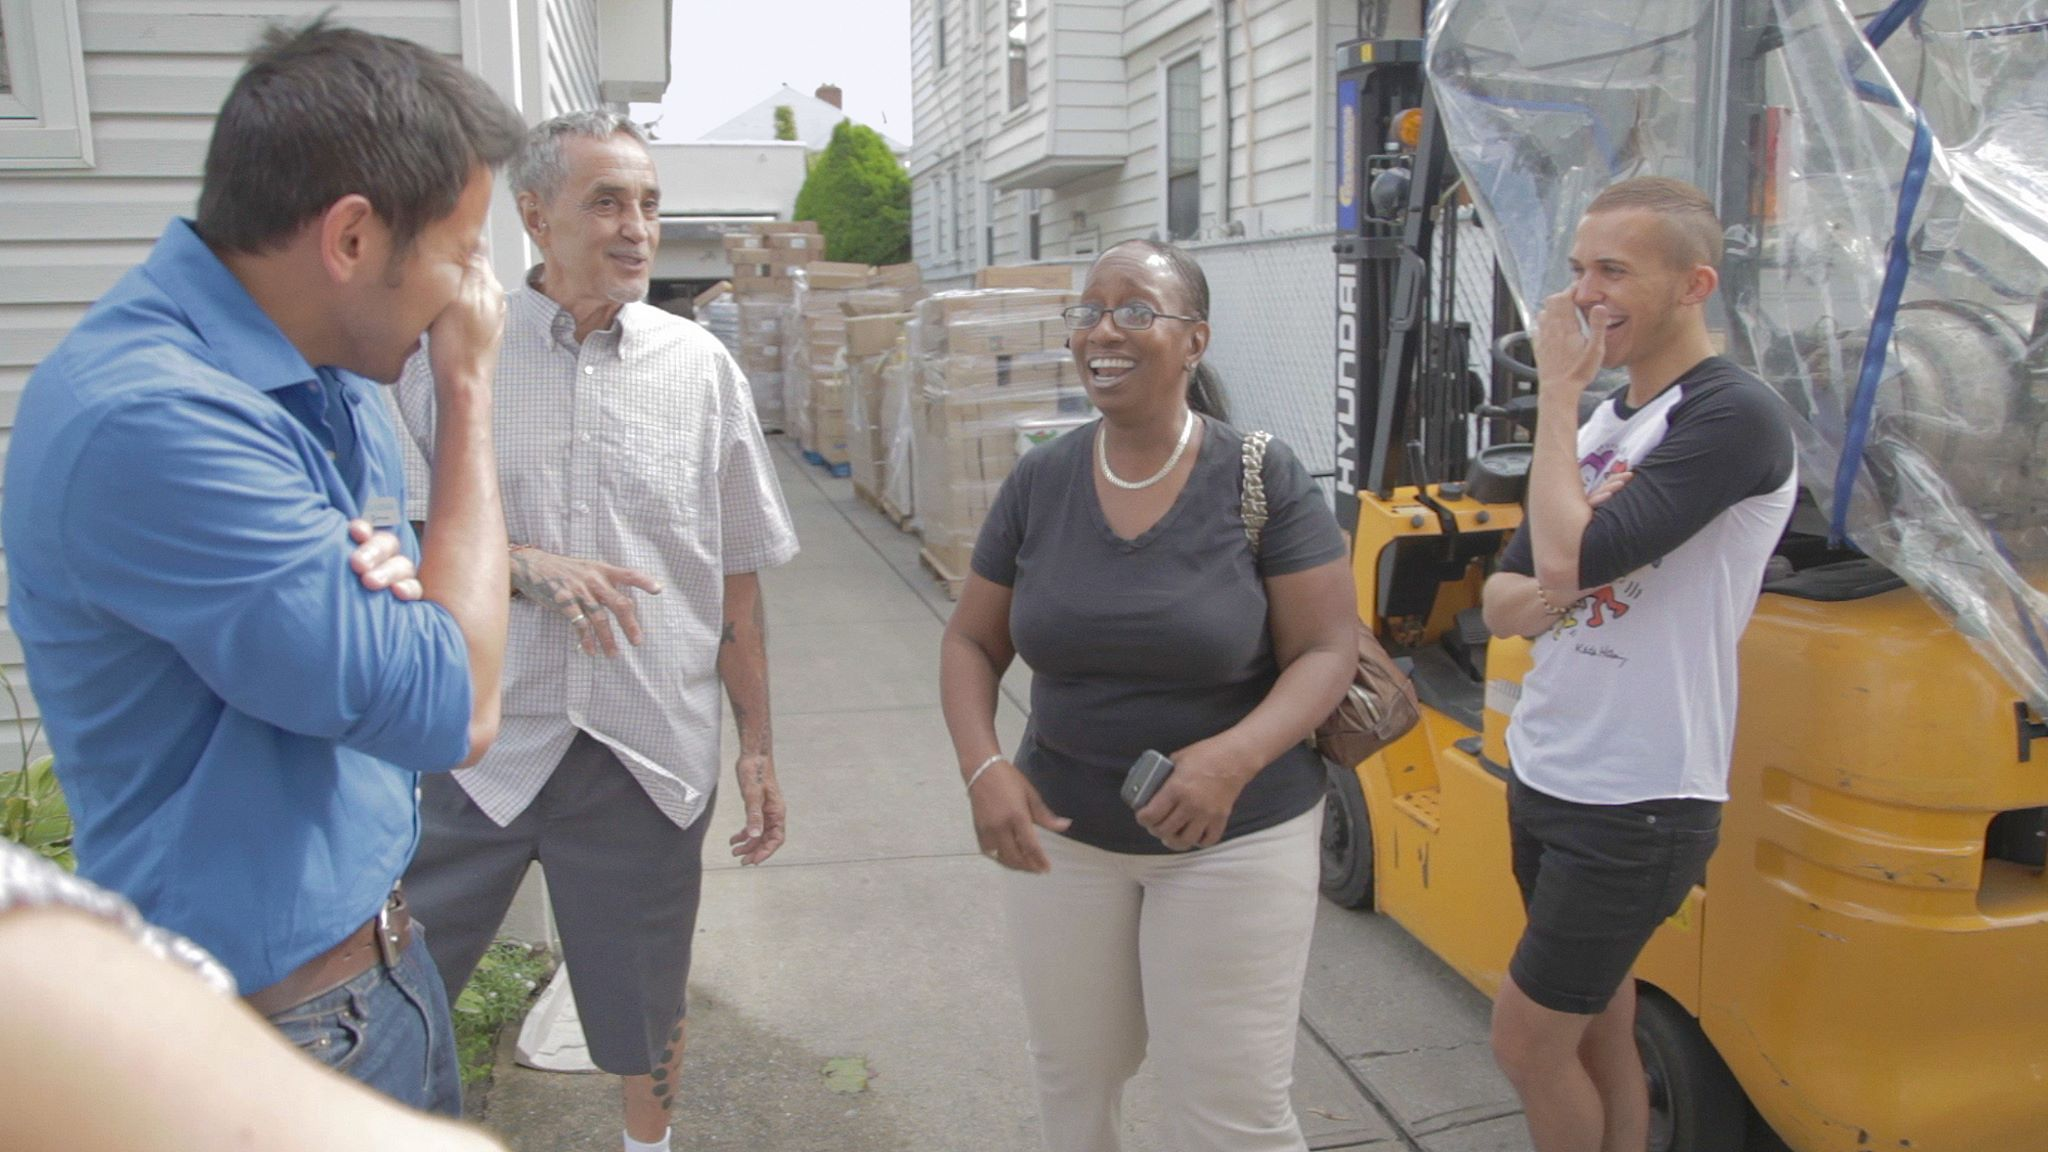 On location with Chris,Swami and Shirleyat the wondrous  River Fund NY  .